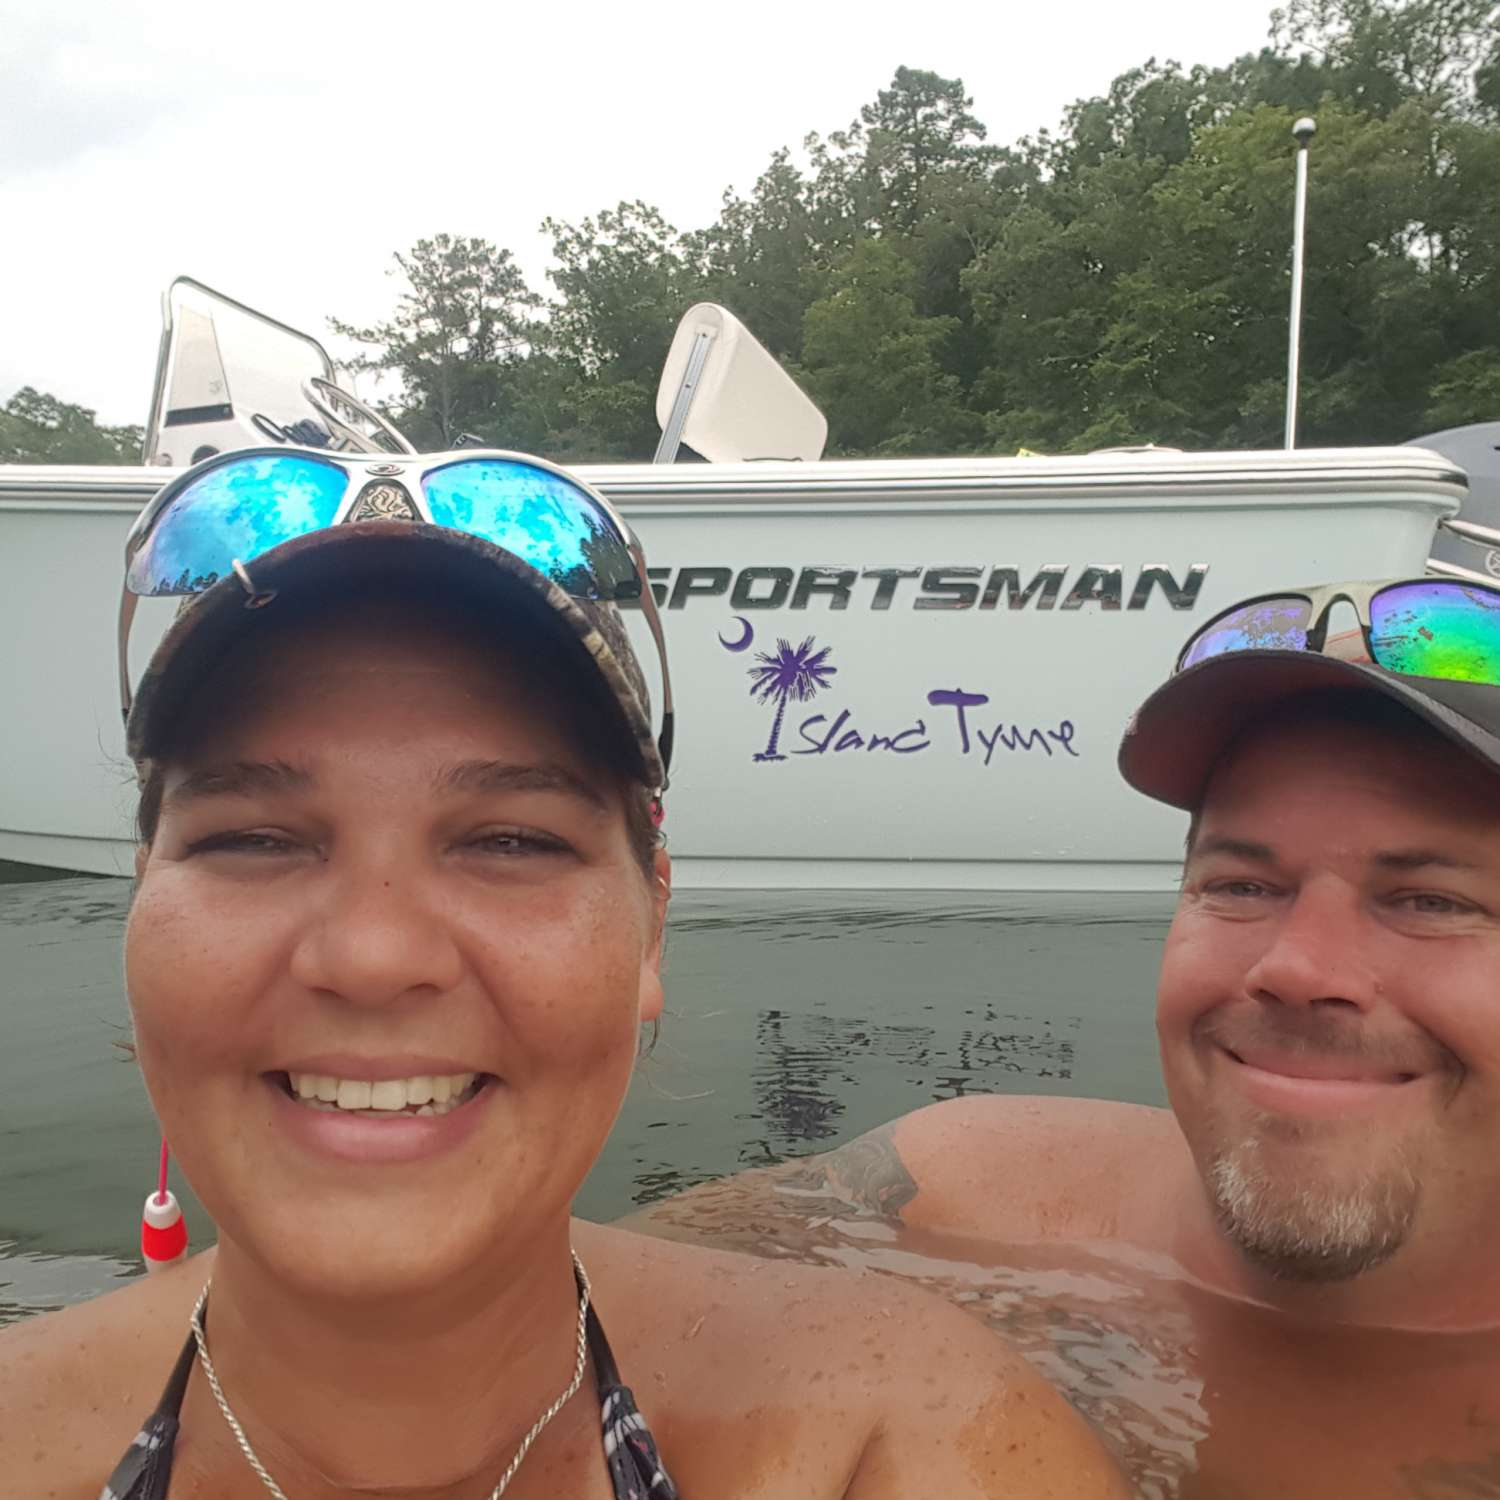 Title: Chillin Lake Side - On board their Sportsman Island Reef 17 Center Console - Location: Columbia, South Carolina. Participating in the Photo Contest #SportsmanAugust2016